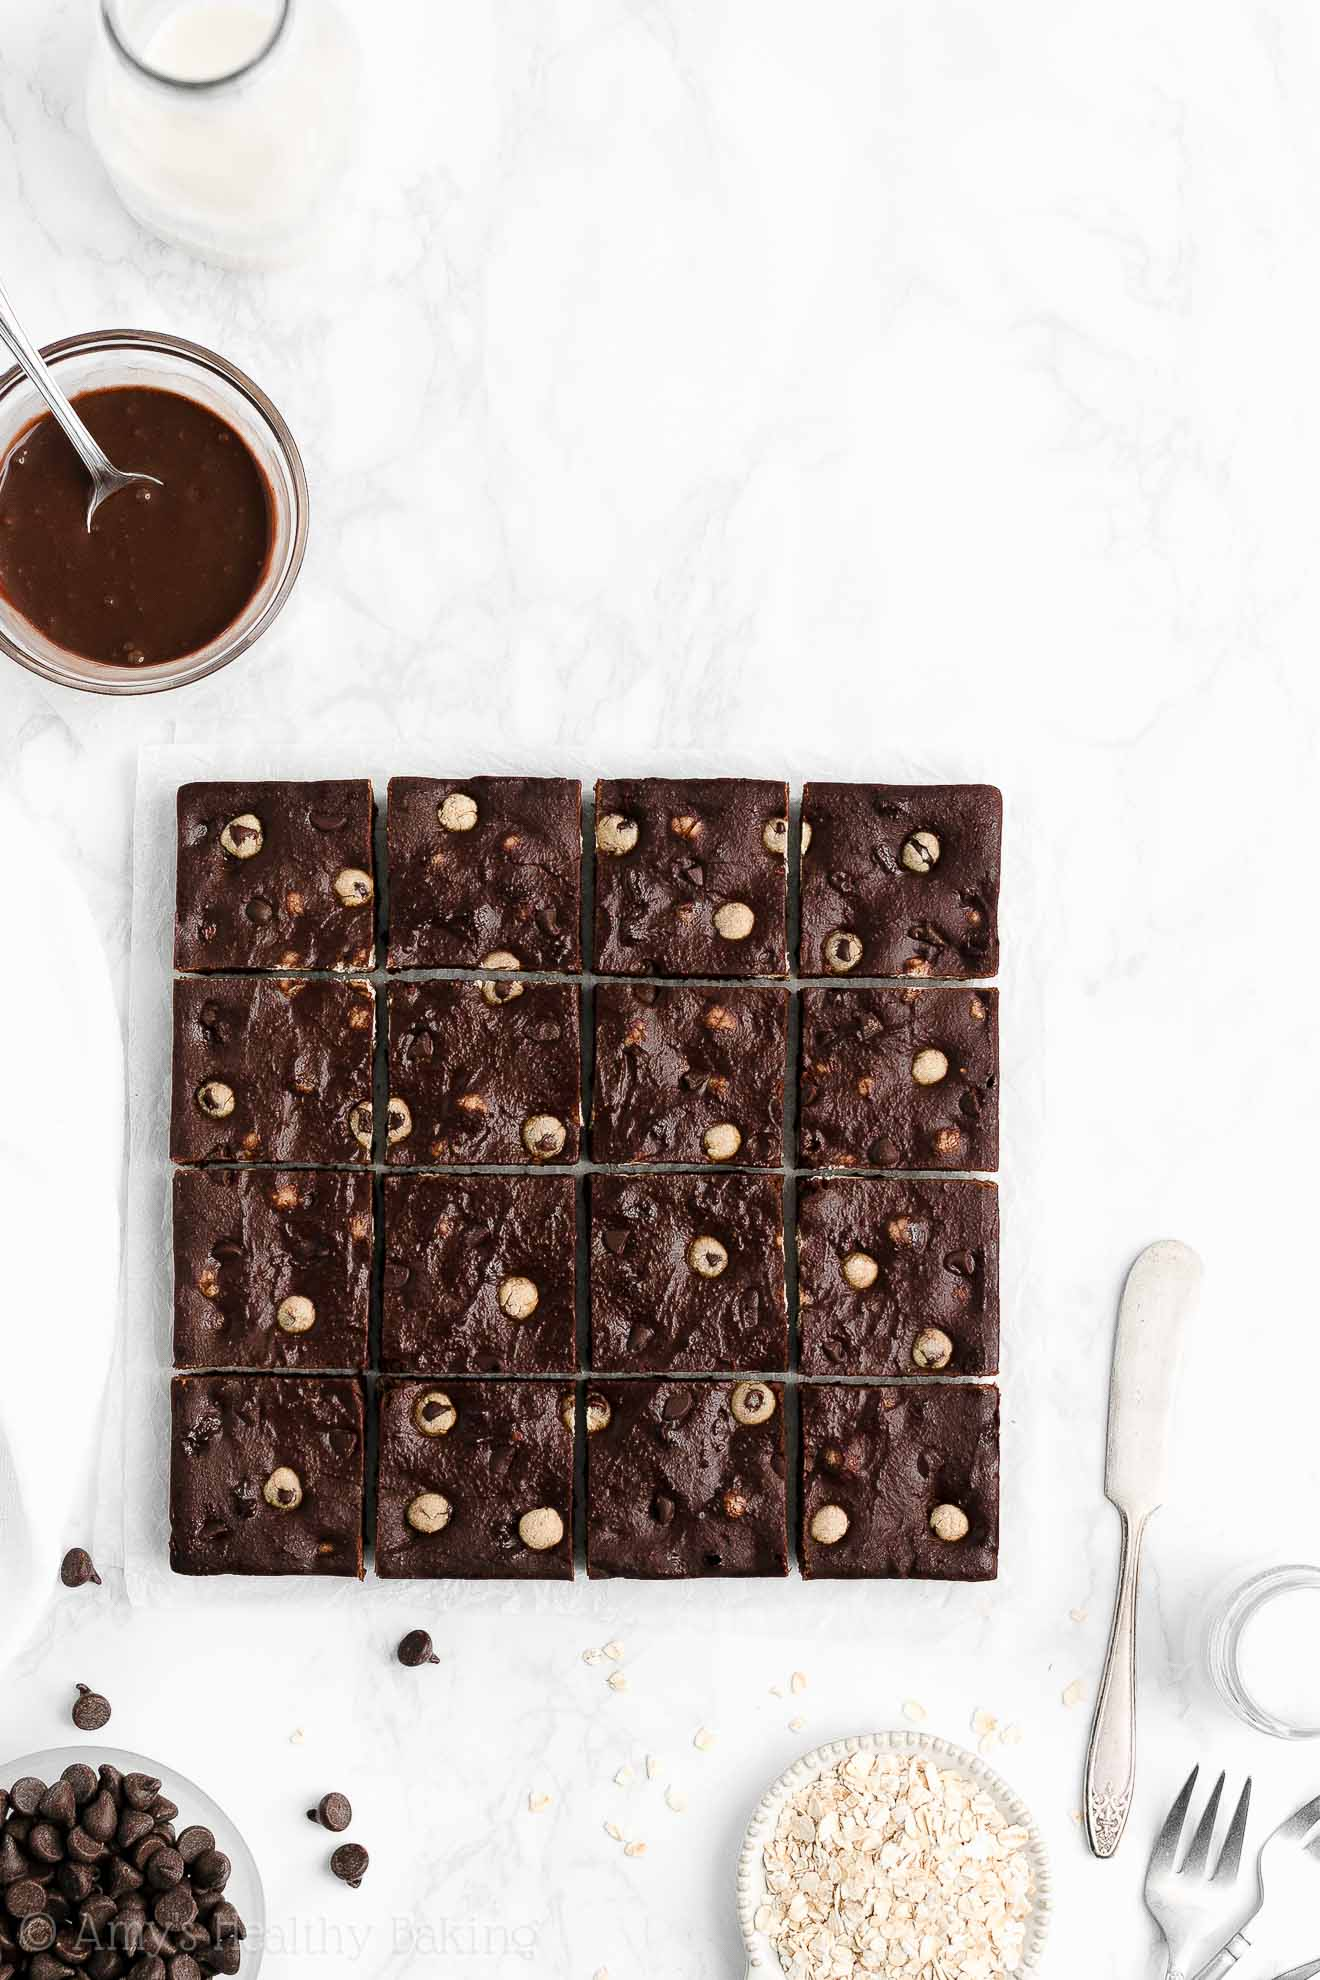 Healthy Flourless Fudgy Chewy Chocolate Chip Cookie Dough Brownies from Scratch